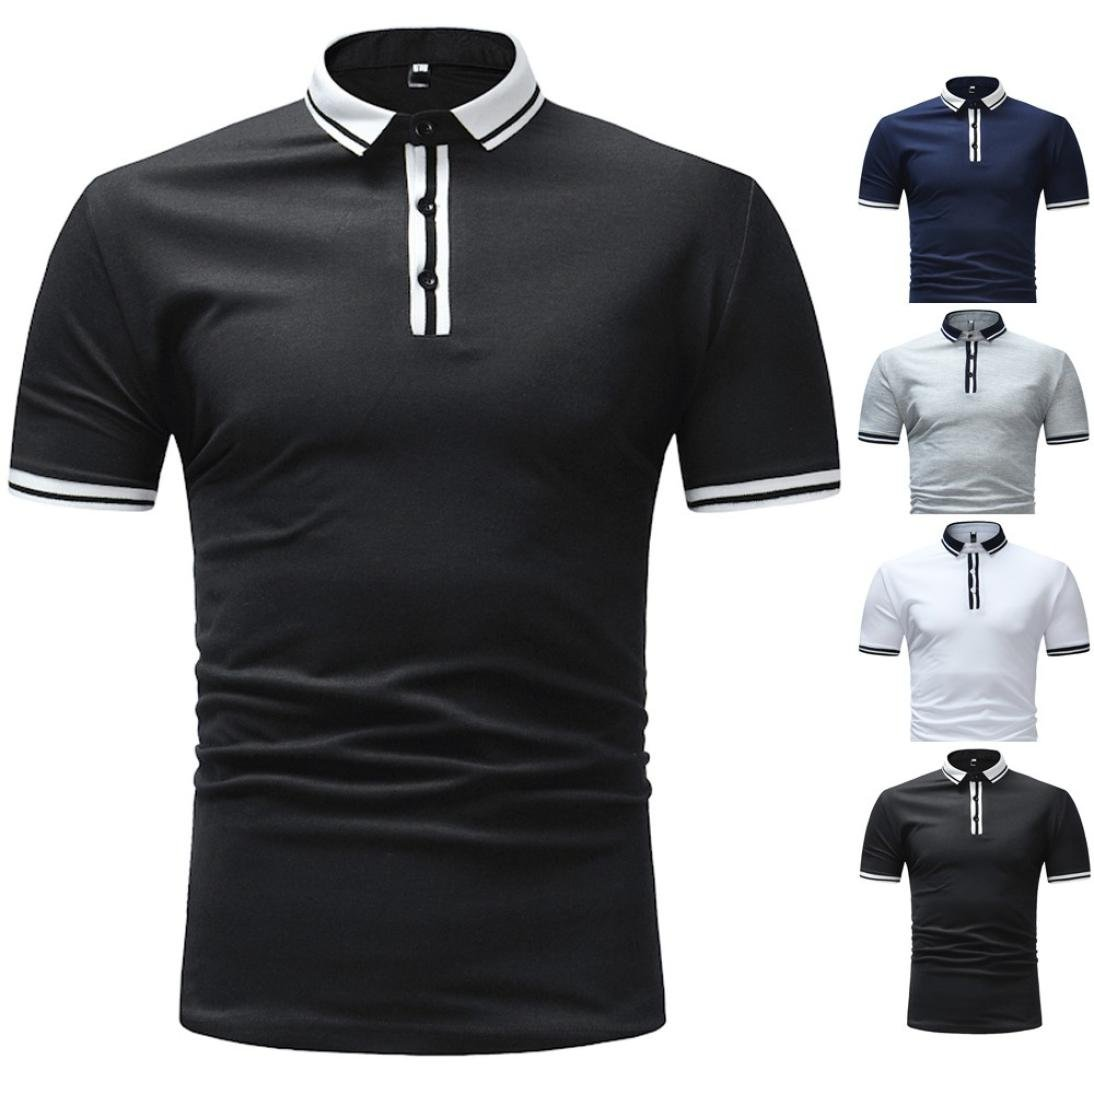 21be62bbe iHPH7 Mens Blouse Business Slim Fit Shirt Short-Sleeve Polo Tops Striped  Tees at Amazon Men's Clothing store: